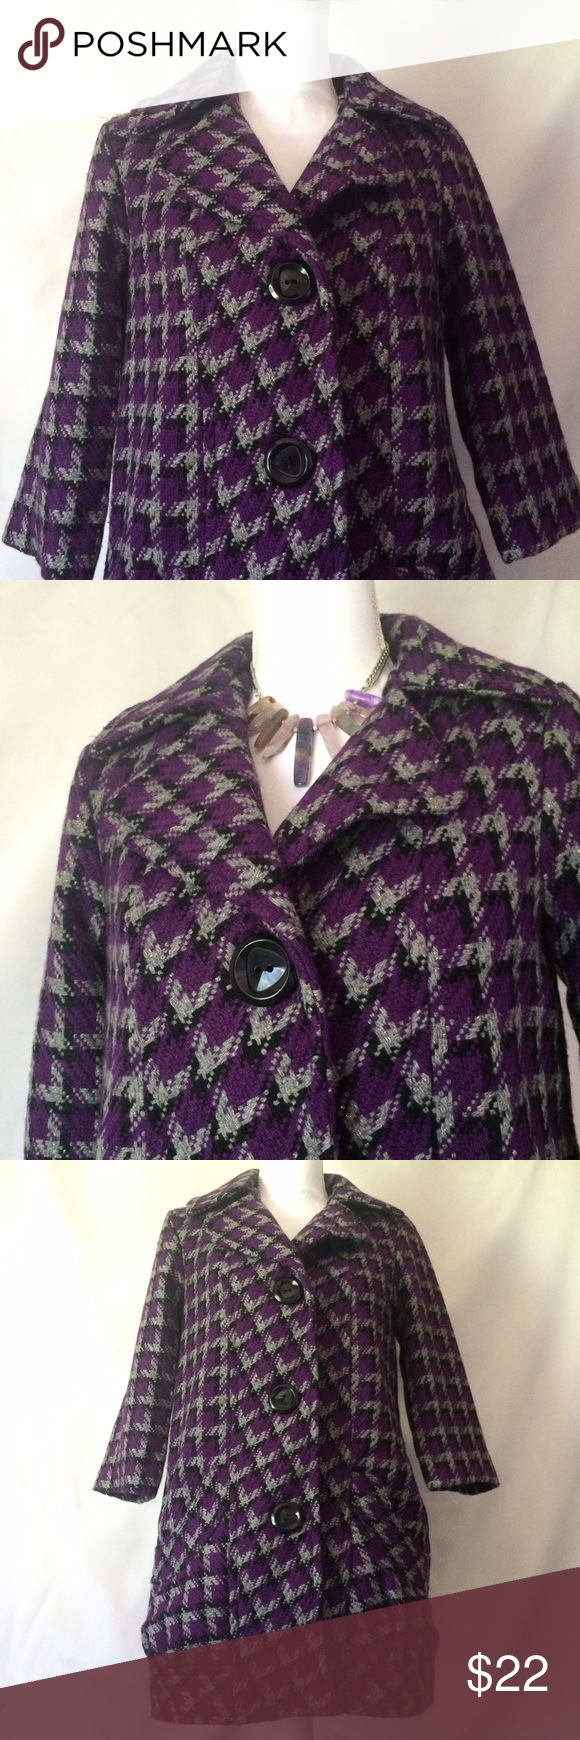 Purple Houndstooth Pea Coat NWT Descriptions to come later this evening. Tulle Jackets & Coats Pea Coats